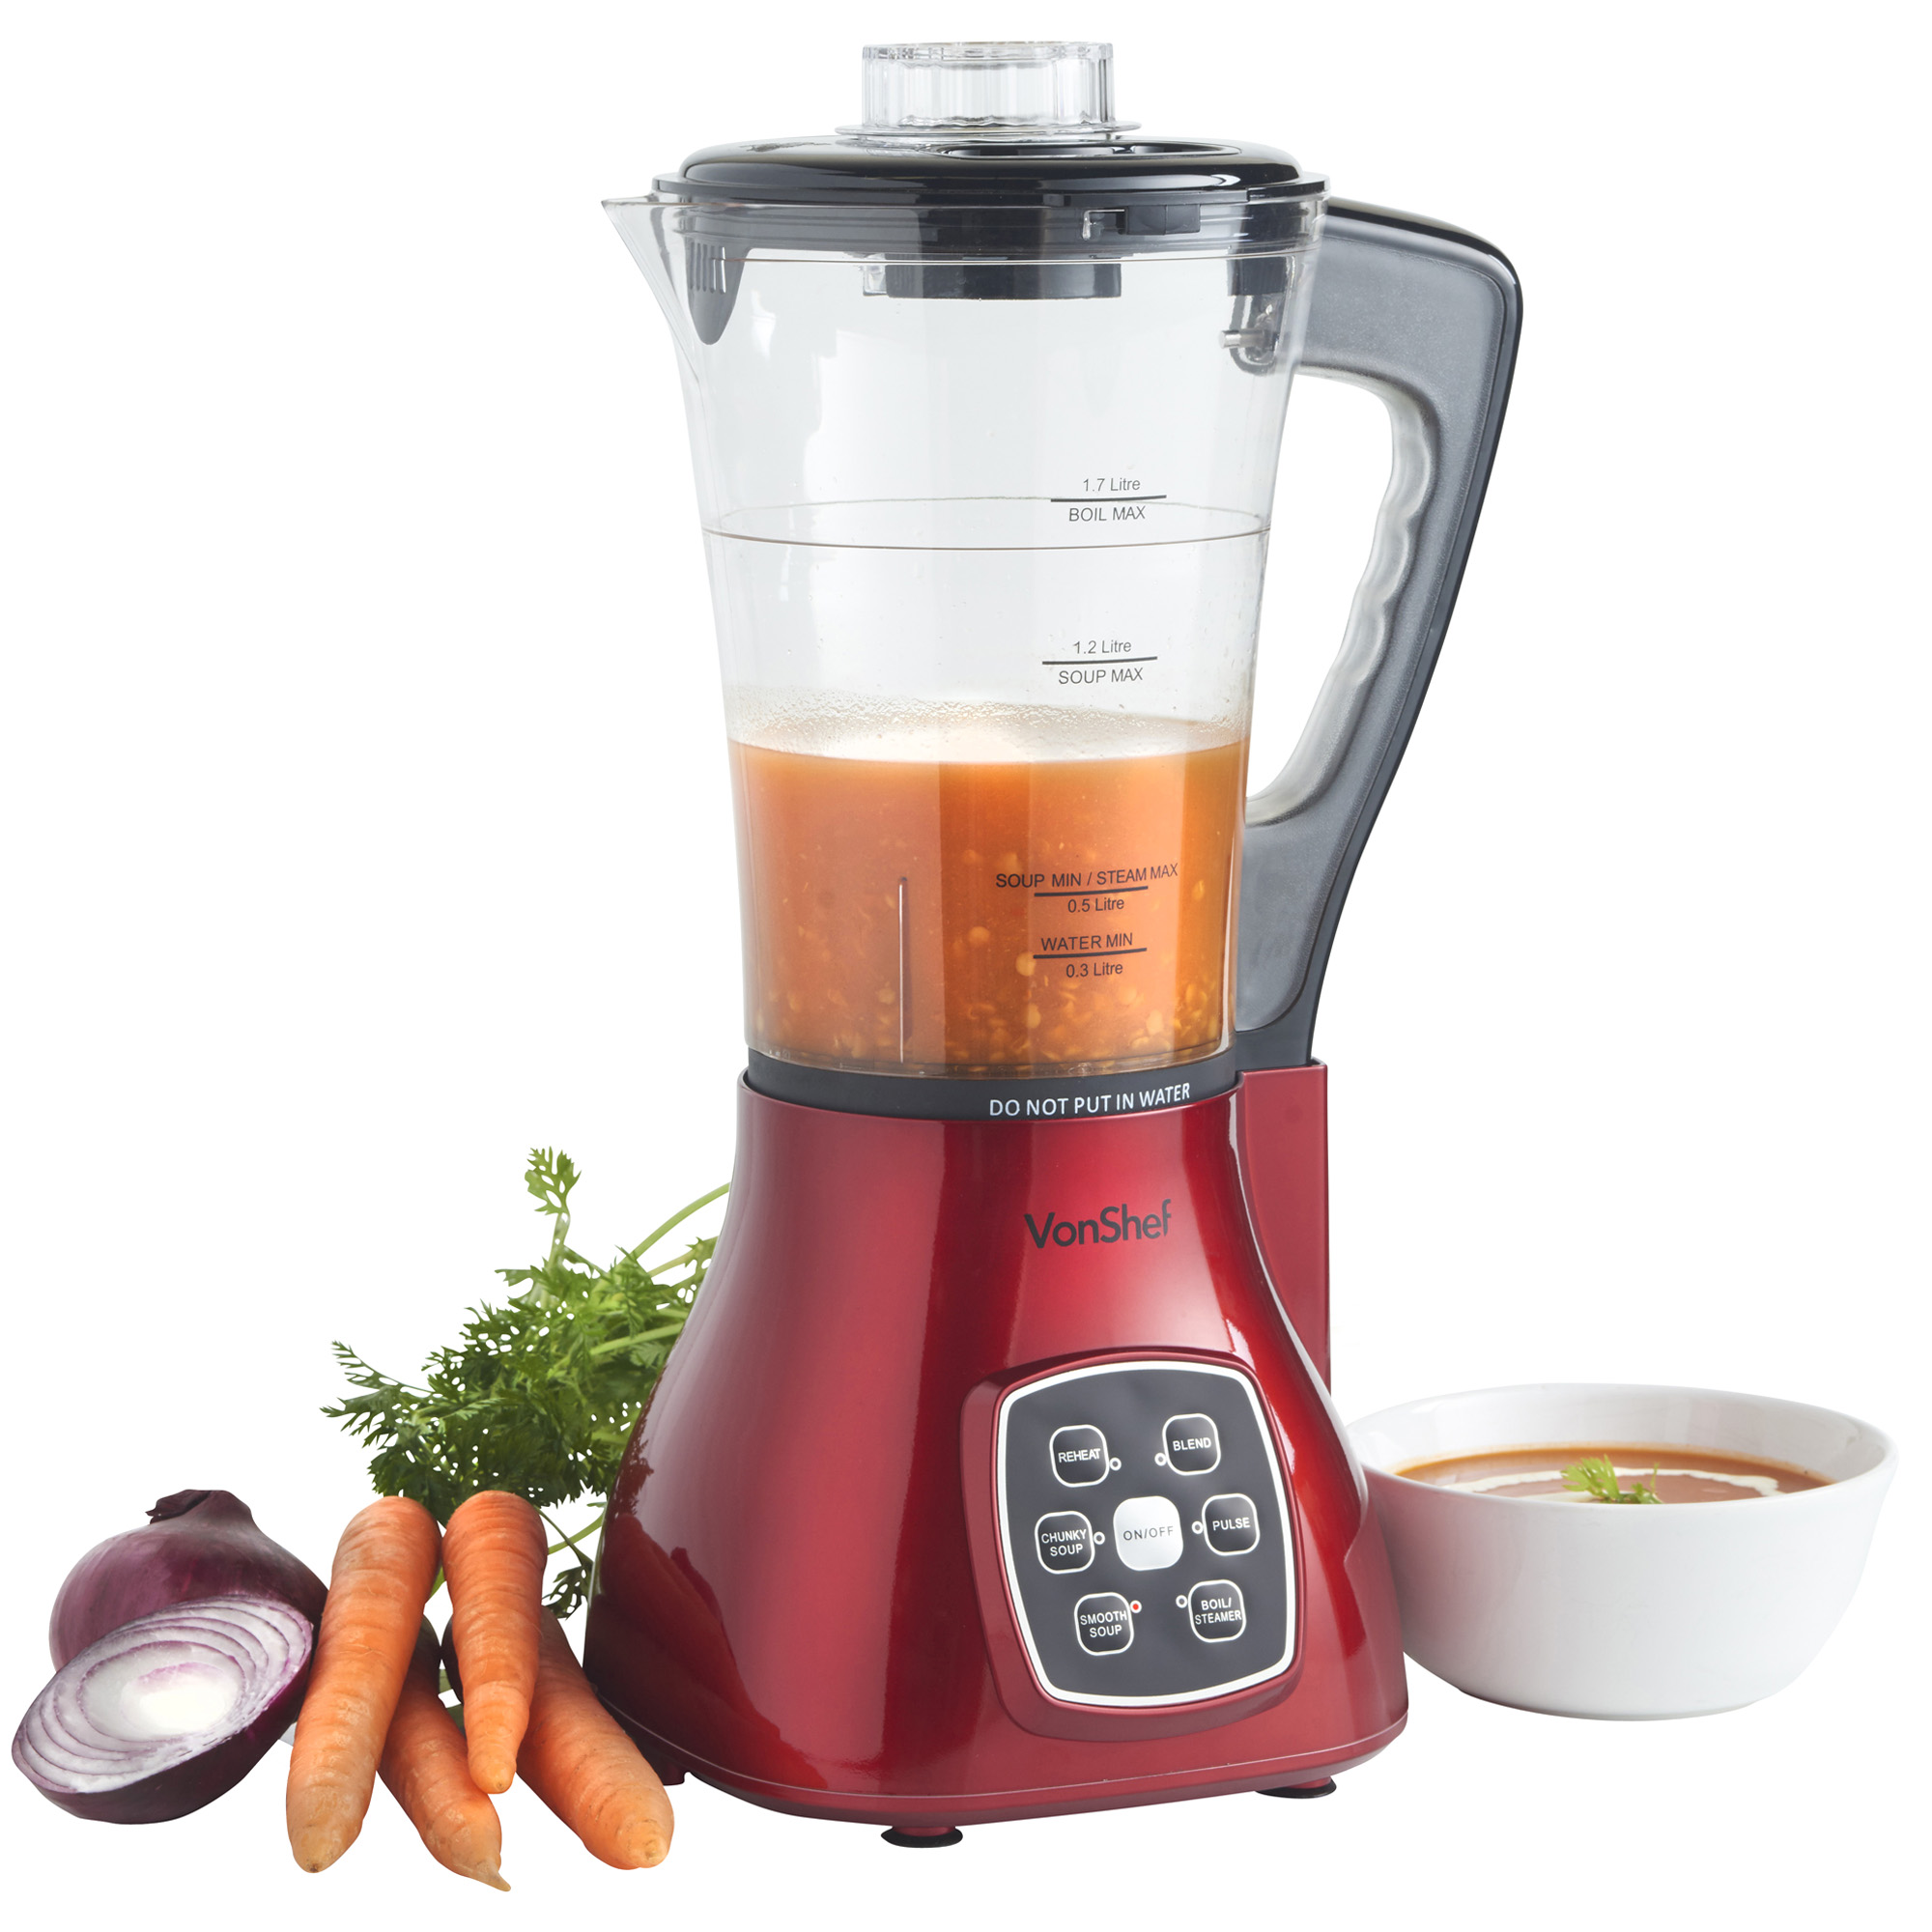 vonshef soup maker red juicer smoothie machine electric blender mixer multi ebay. Black Bedroom Furniture Sets. Home Design Ideas